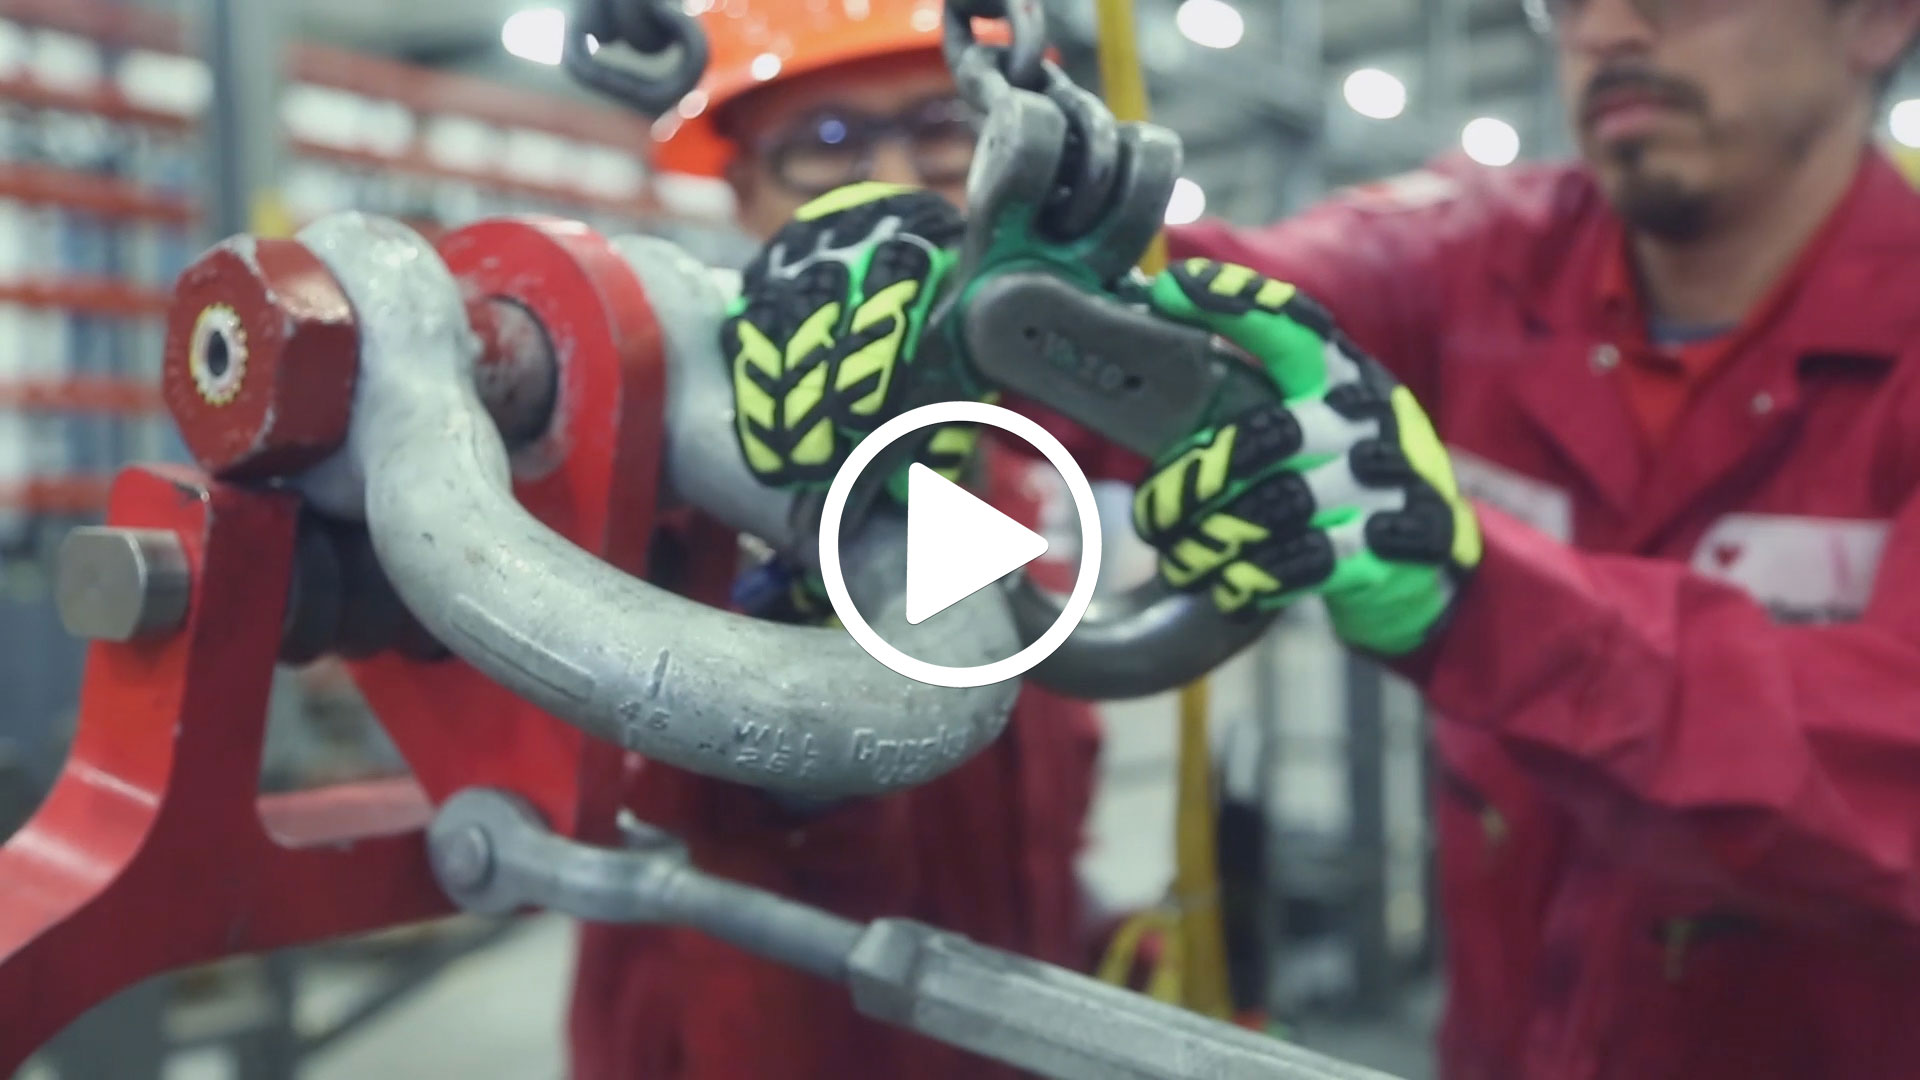 Watch our careers video for available job opening PC Pump Service Technician in Bakersfield, CA